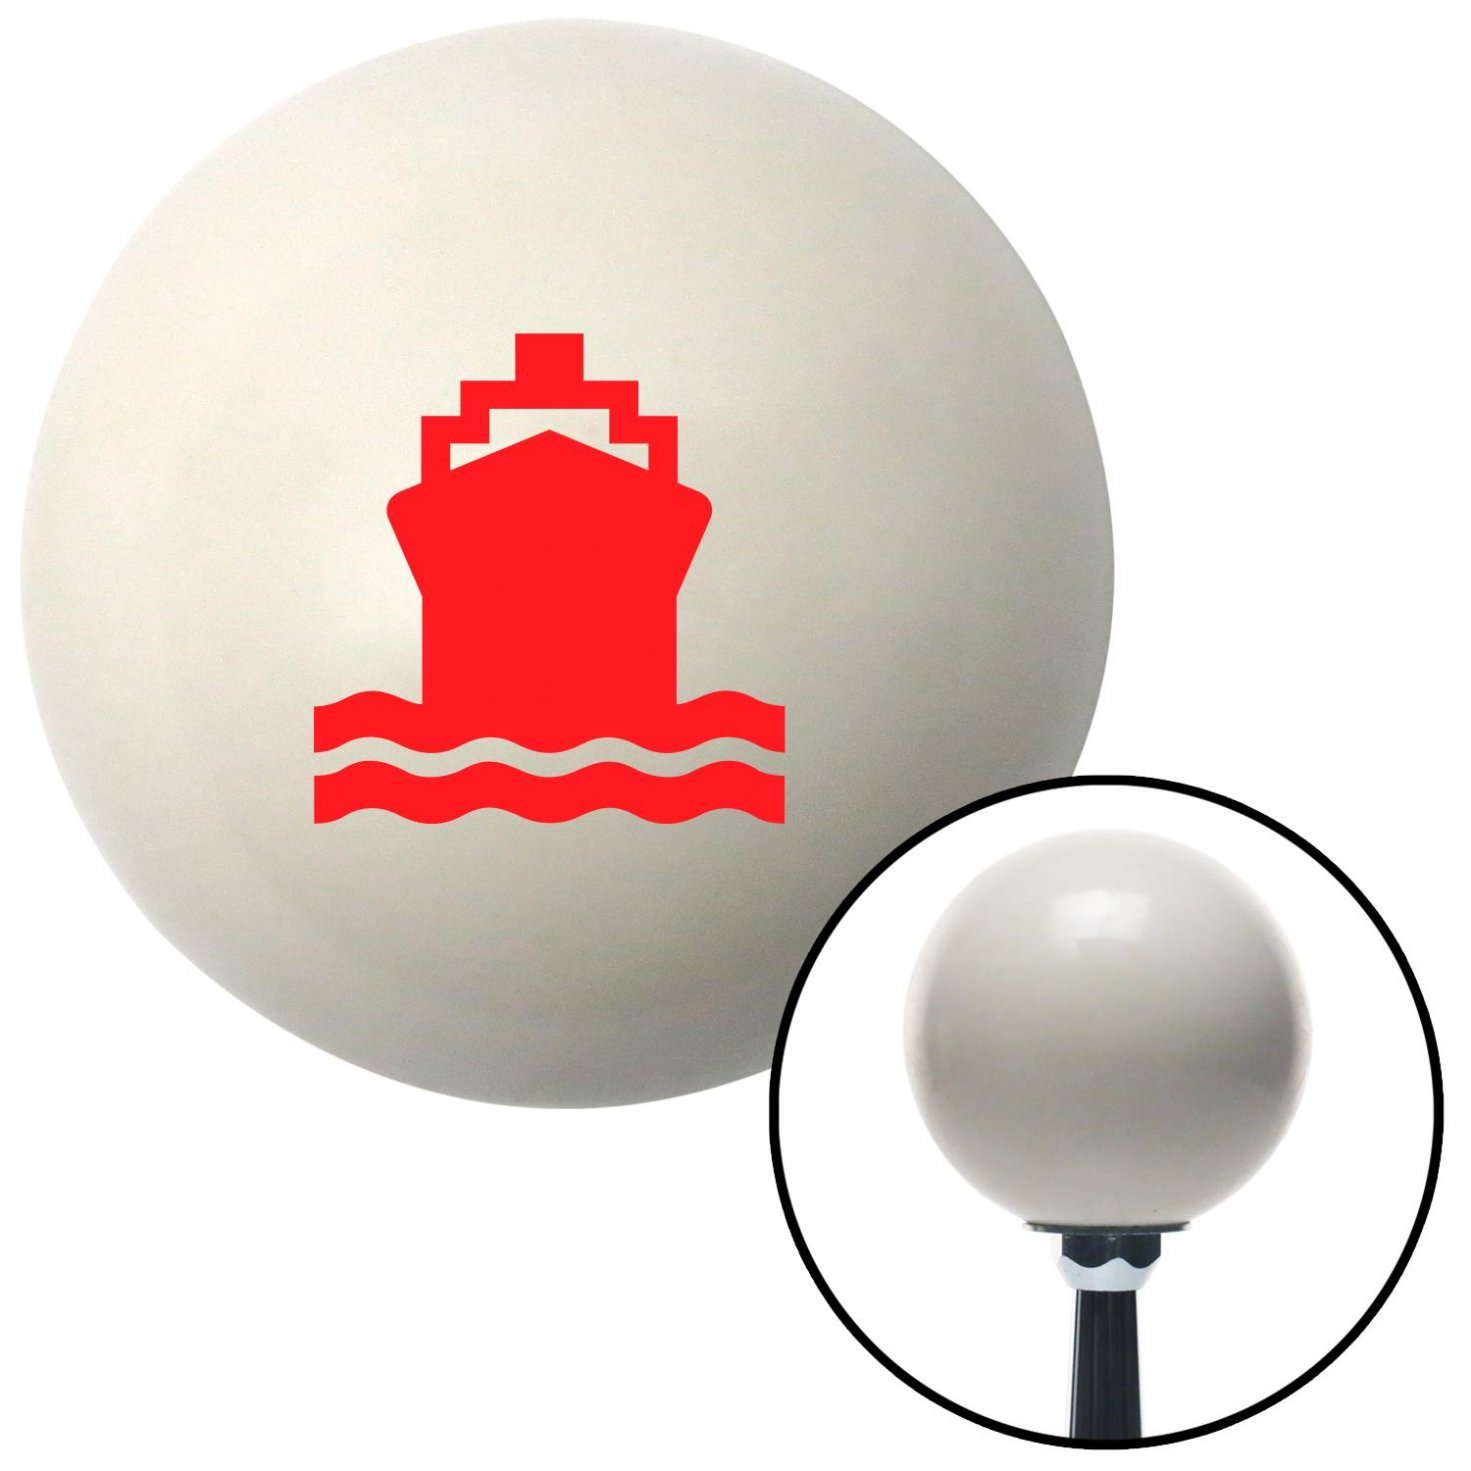 American Shifter 34792 Ivory Shift Knob with 16mm x 1.5 Insert Red Cruiseship